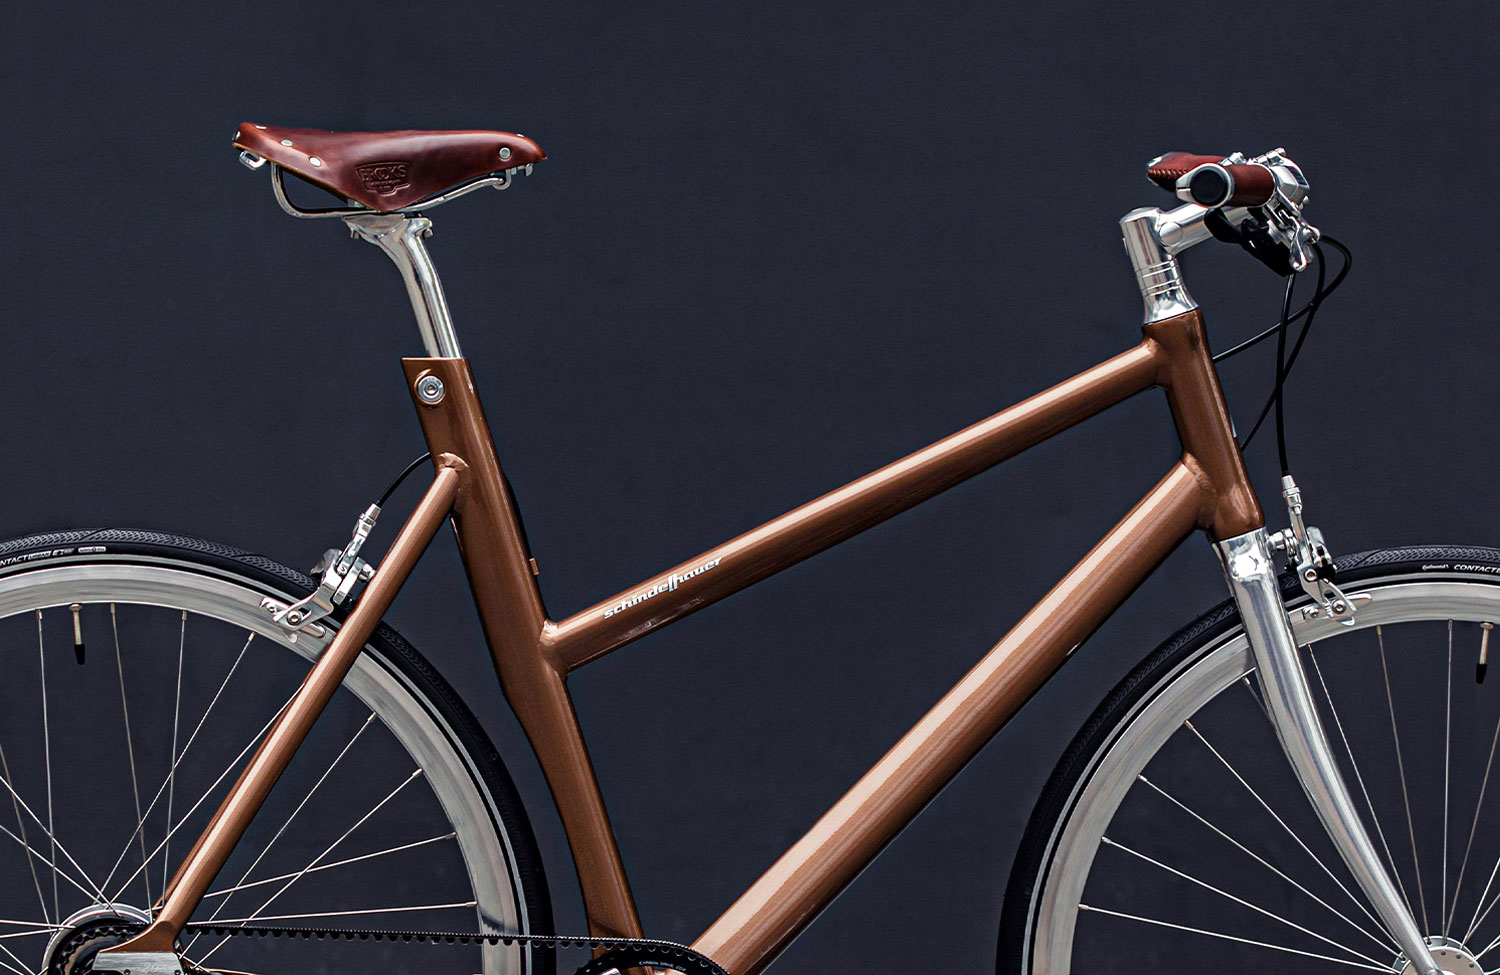 In a limited colorway: Schindelhauer Bikes' Nougat Edition